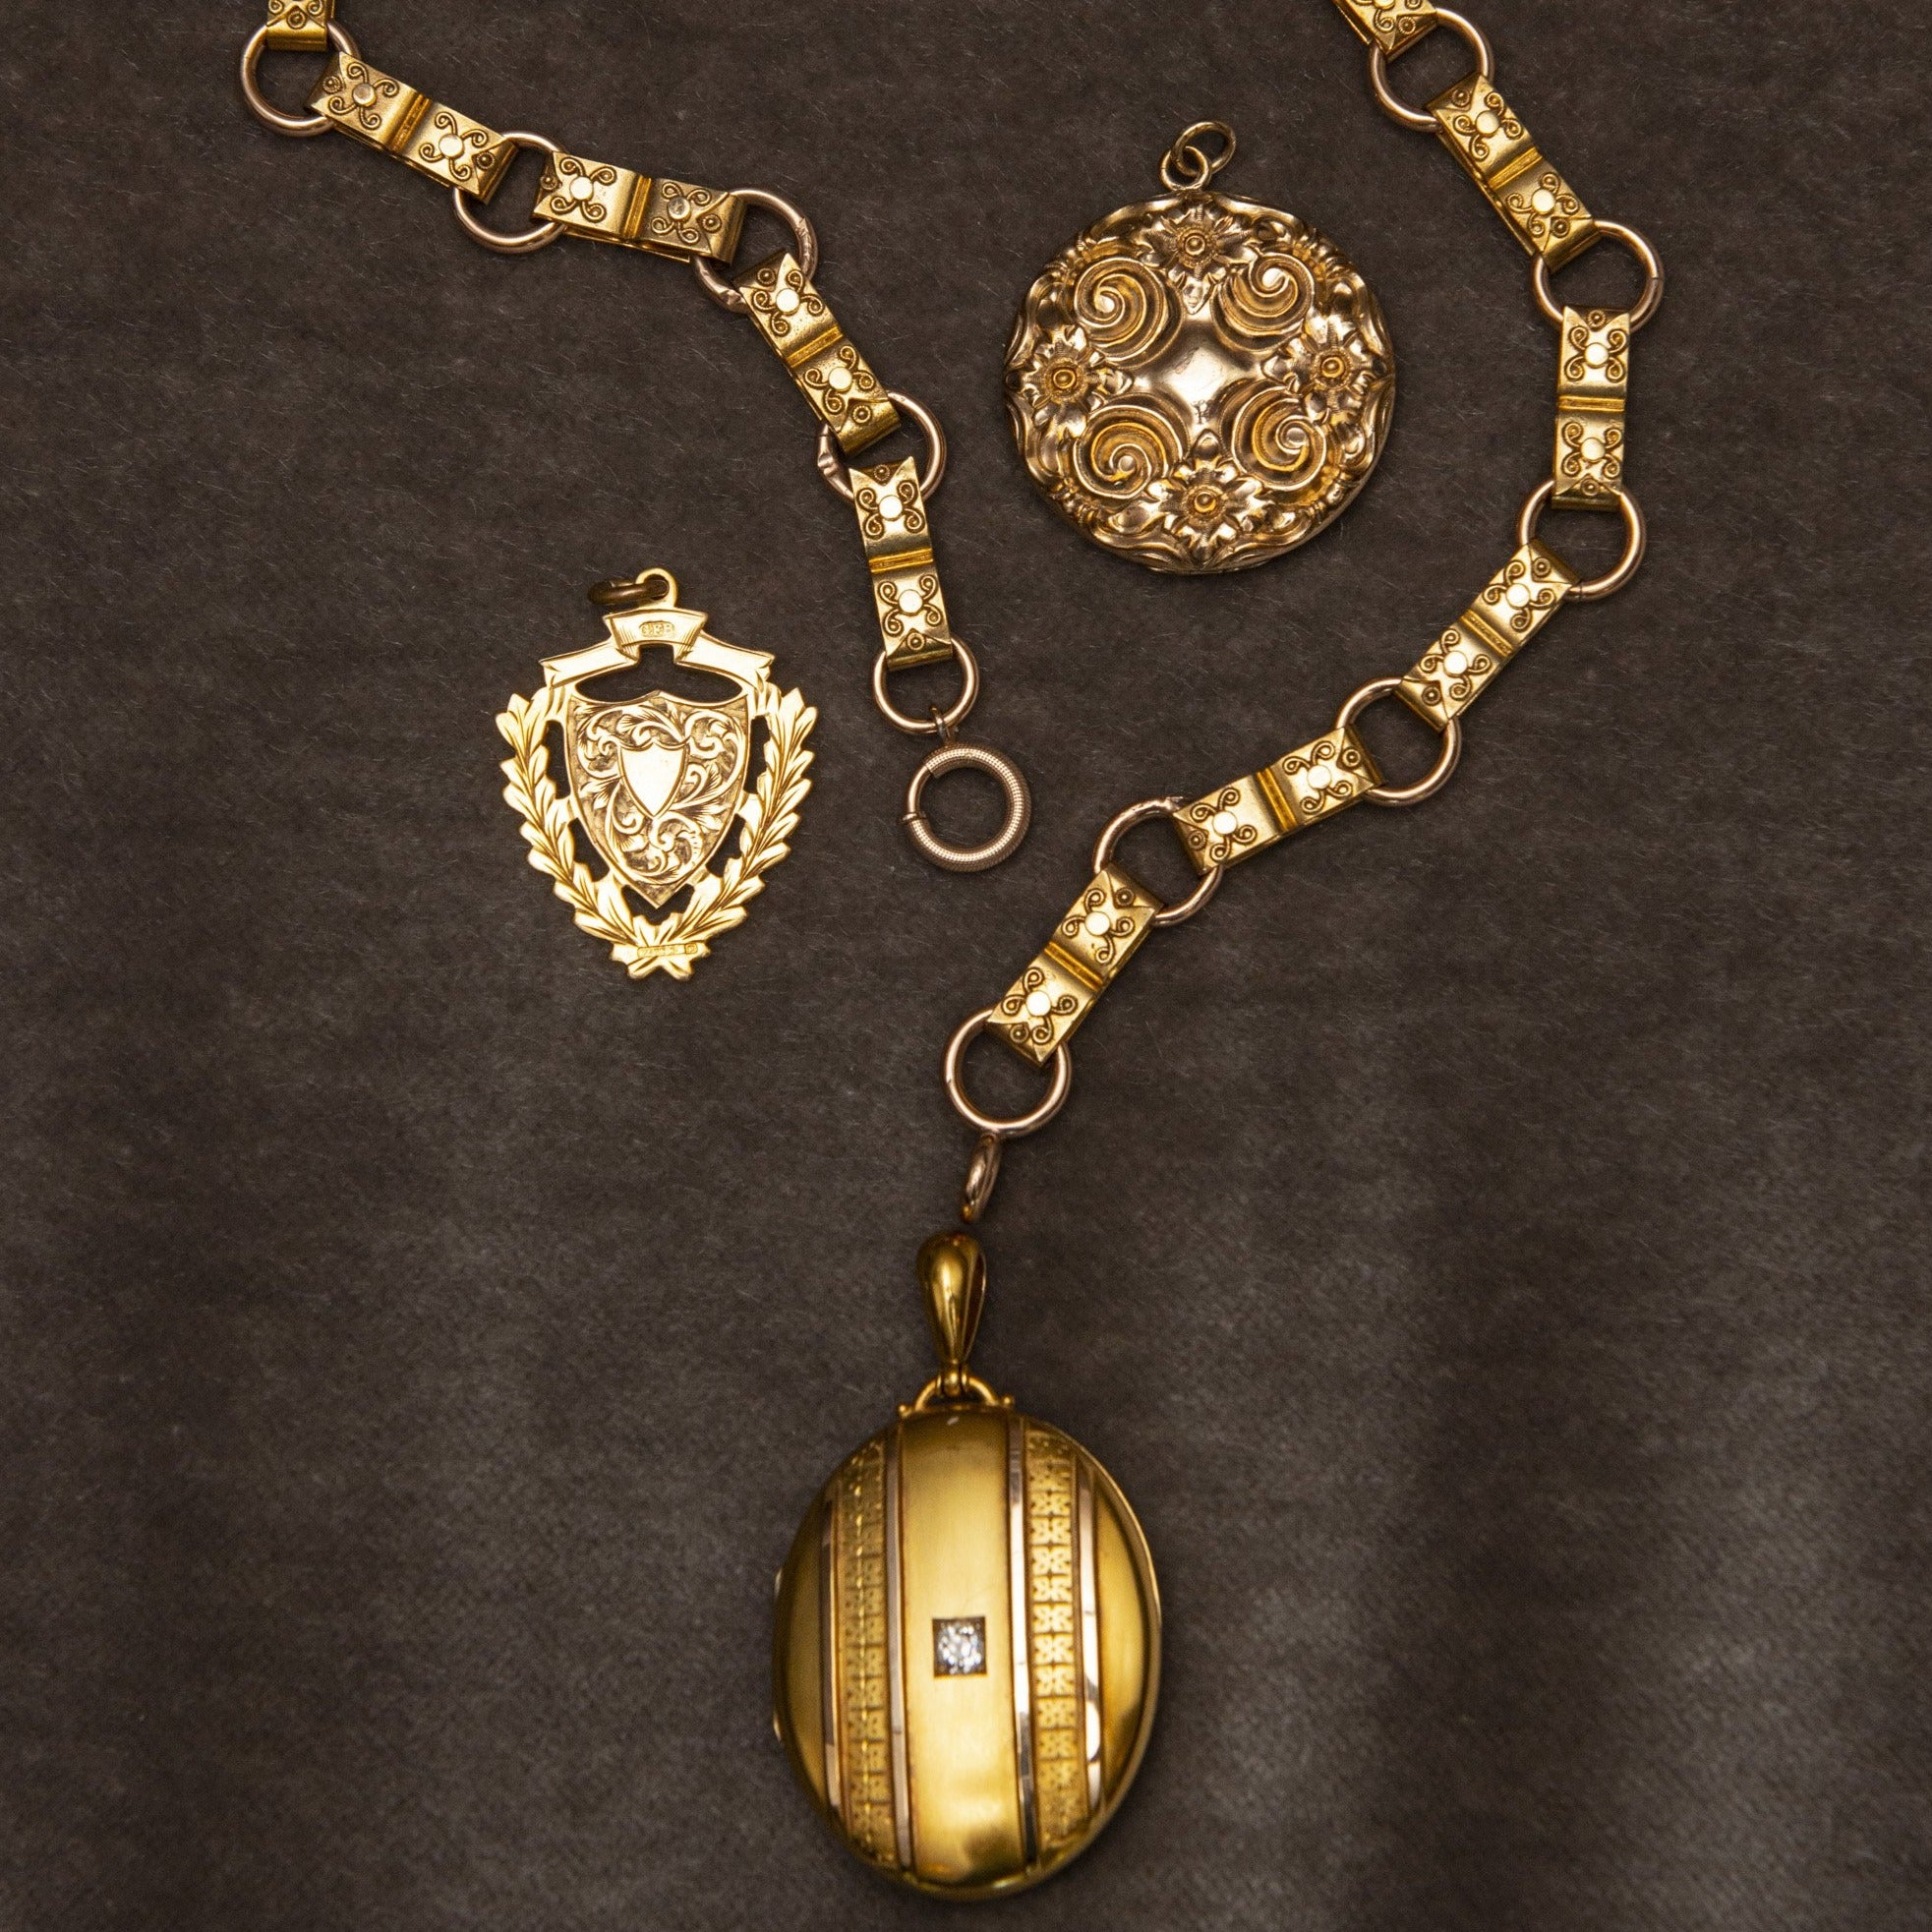 Victorian Rolled Gold Fob Medal Shield Fob Pendant